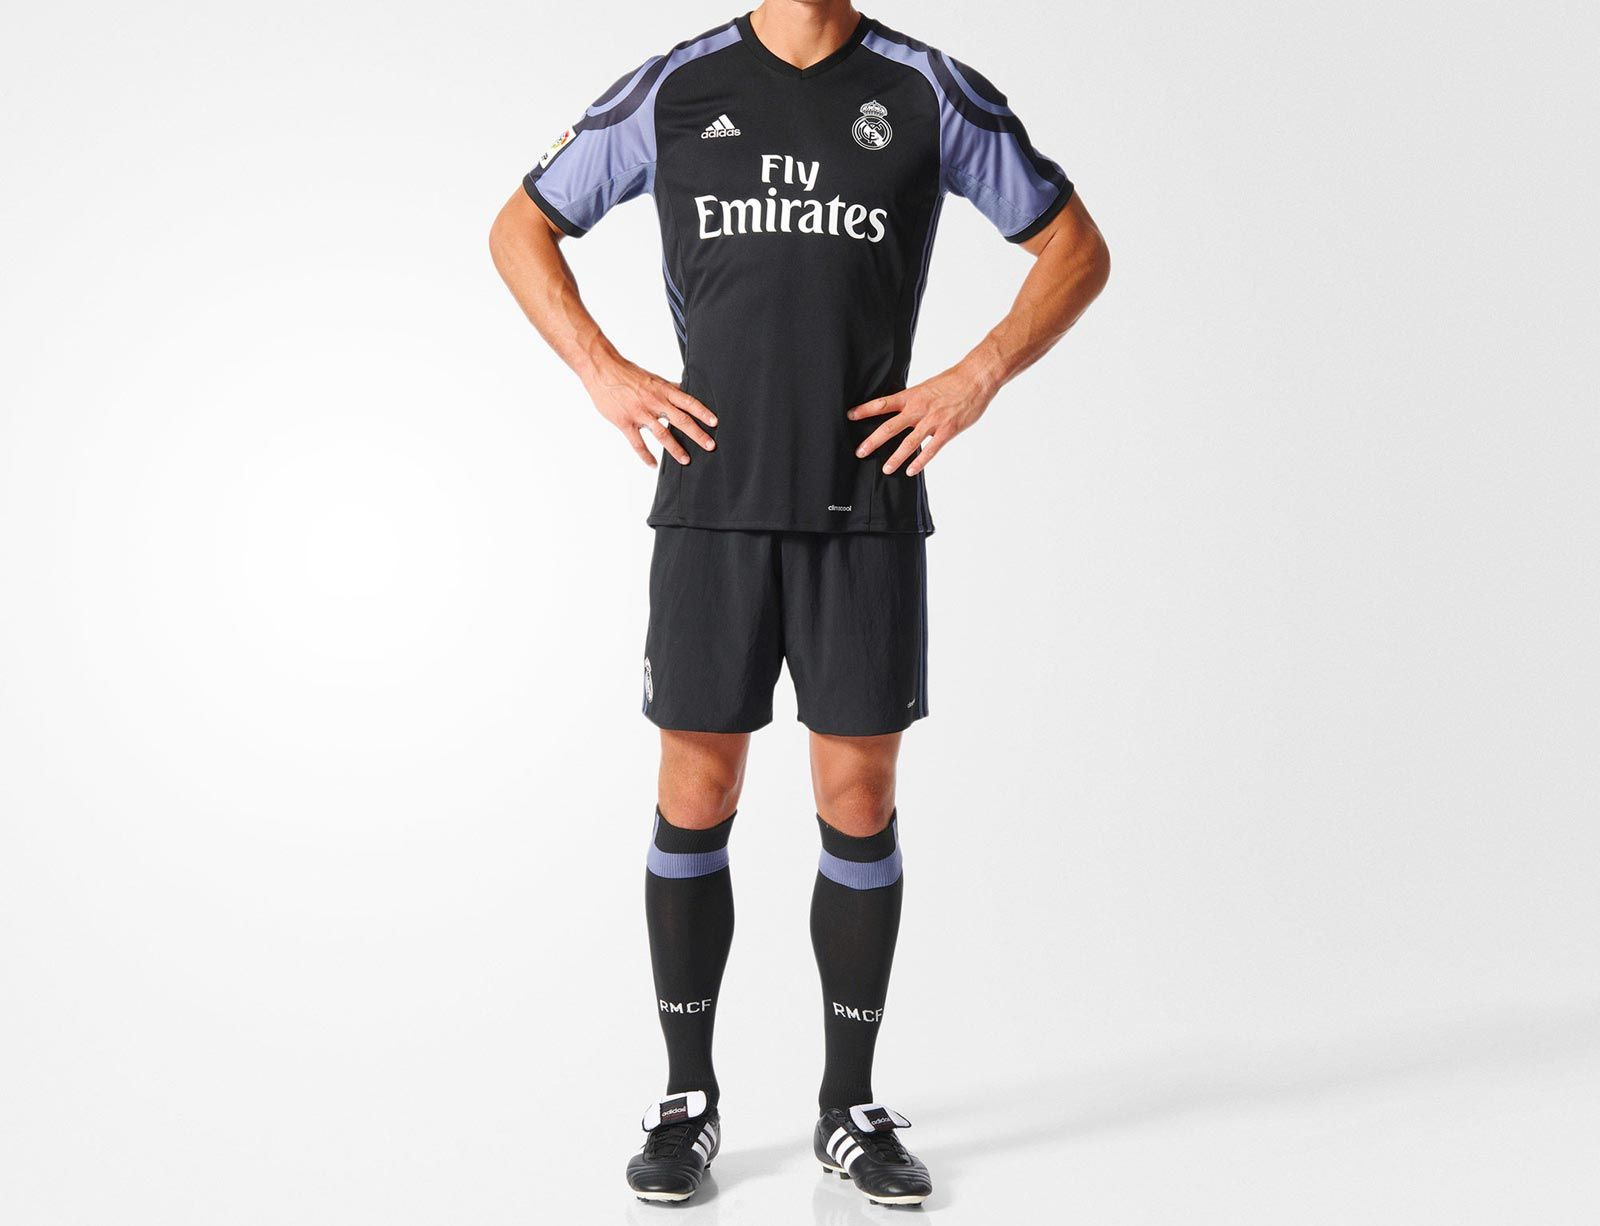 229119f11 Real Madrid 16-17 Third Kit Released - Footy Headlines